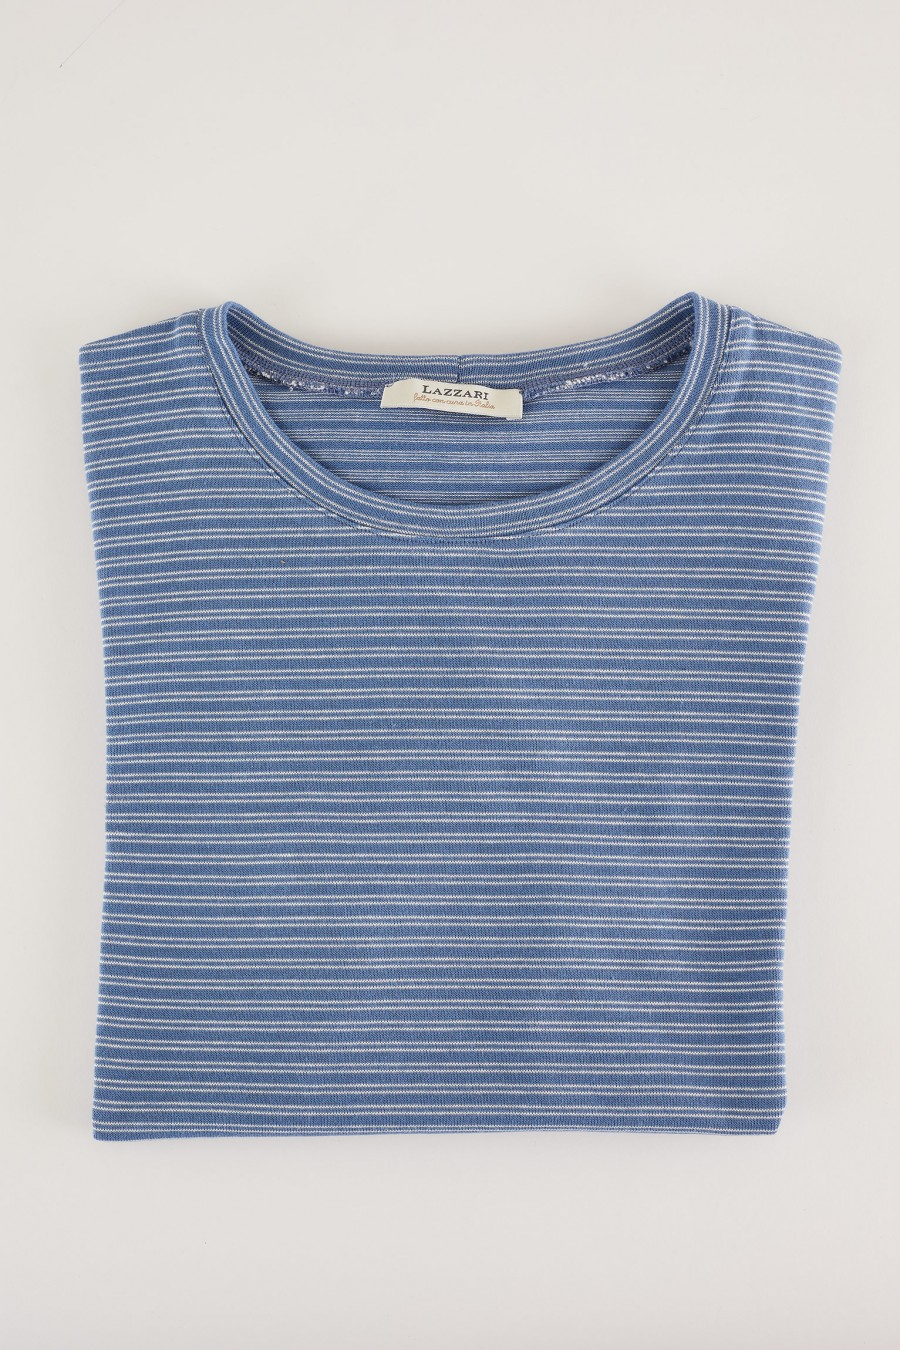 powder blue t-shirt with white stripes